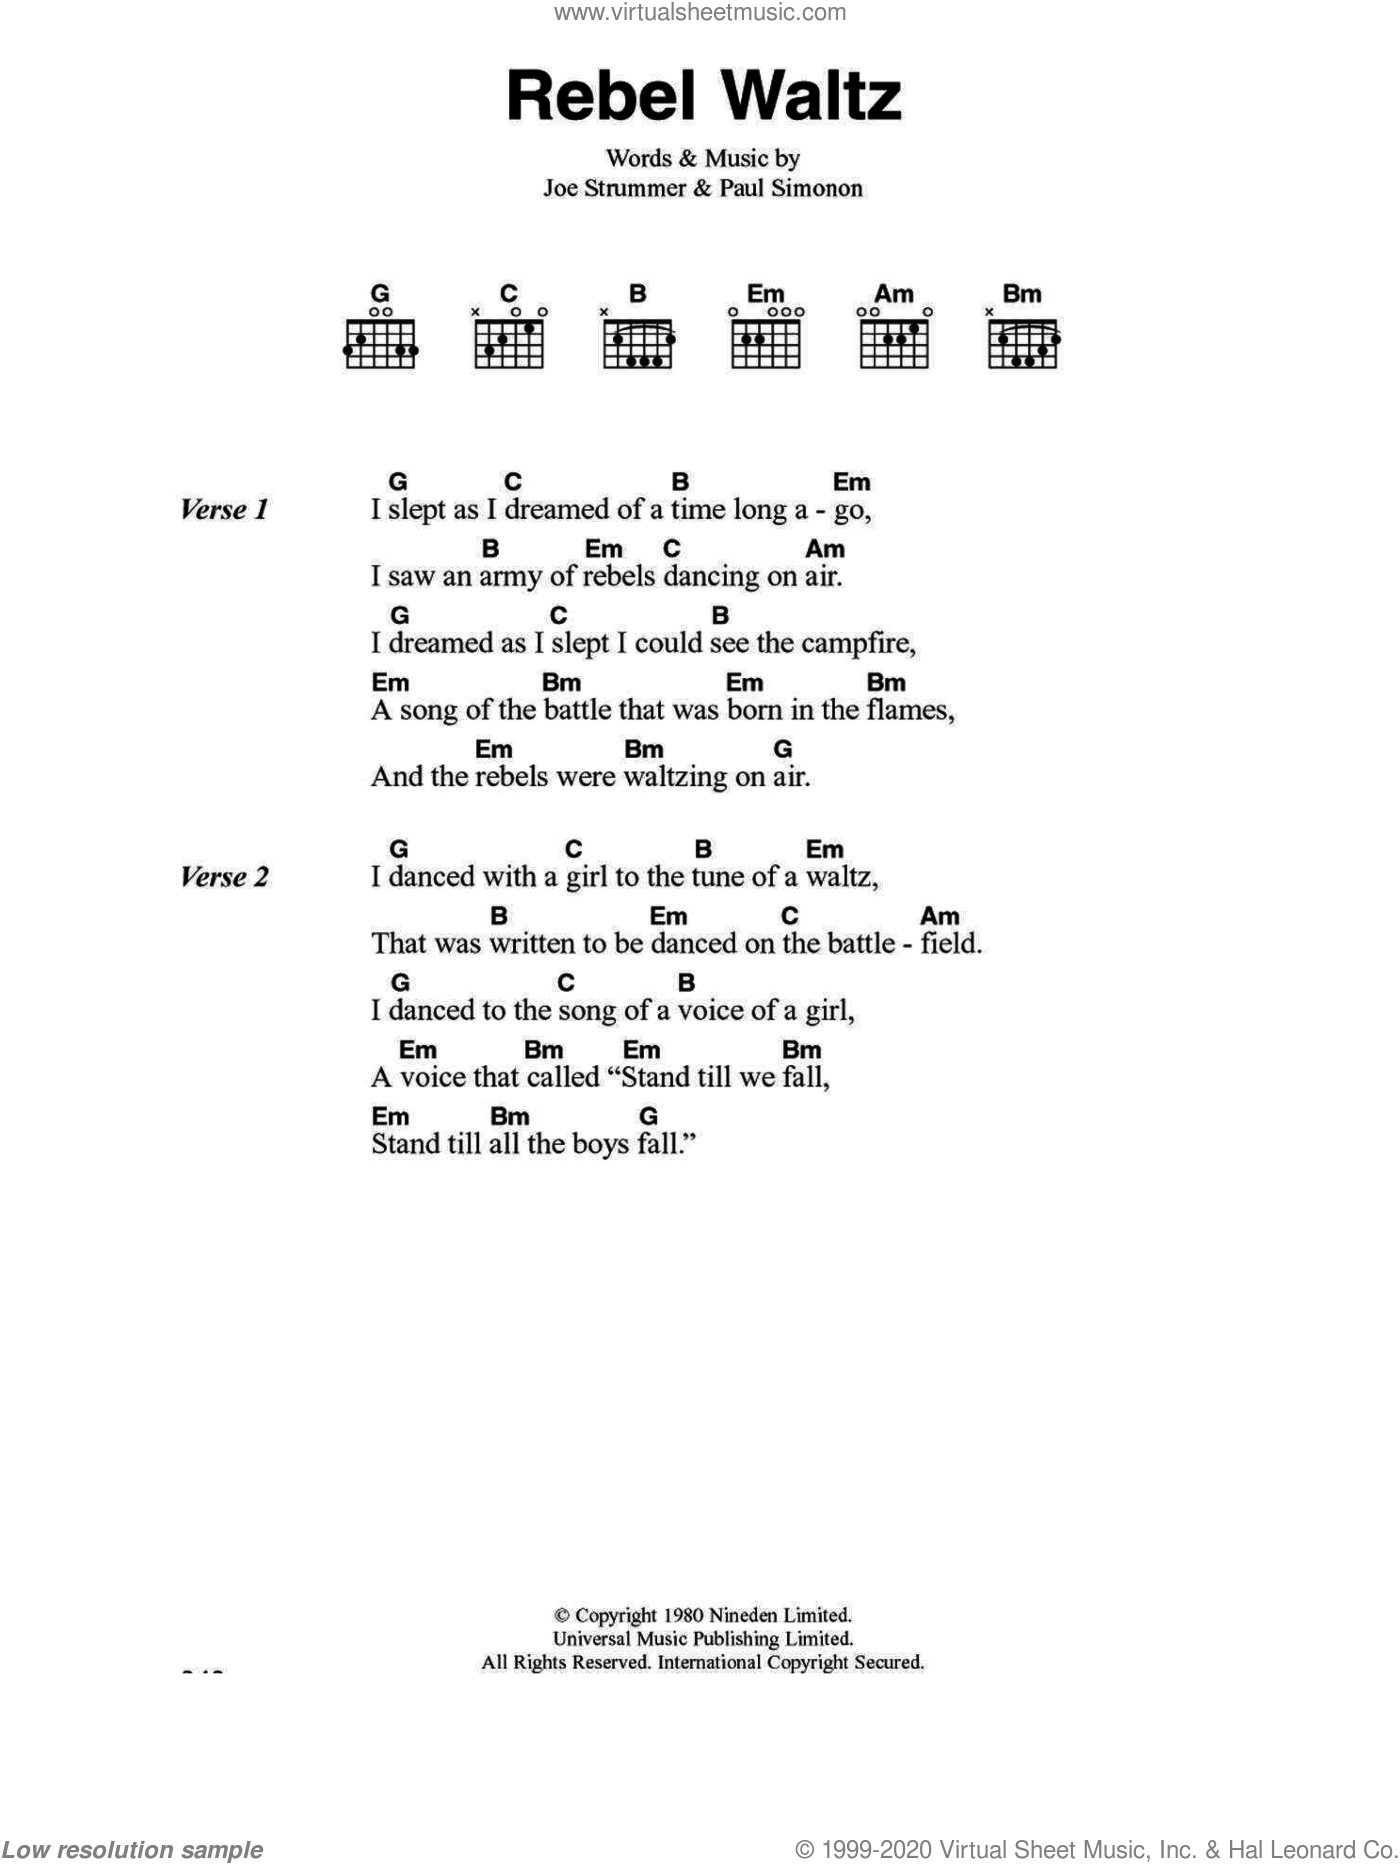 Clash - Rebel Waltz sheet music for guitar (chords) [PDF]